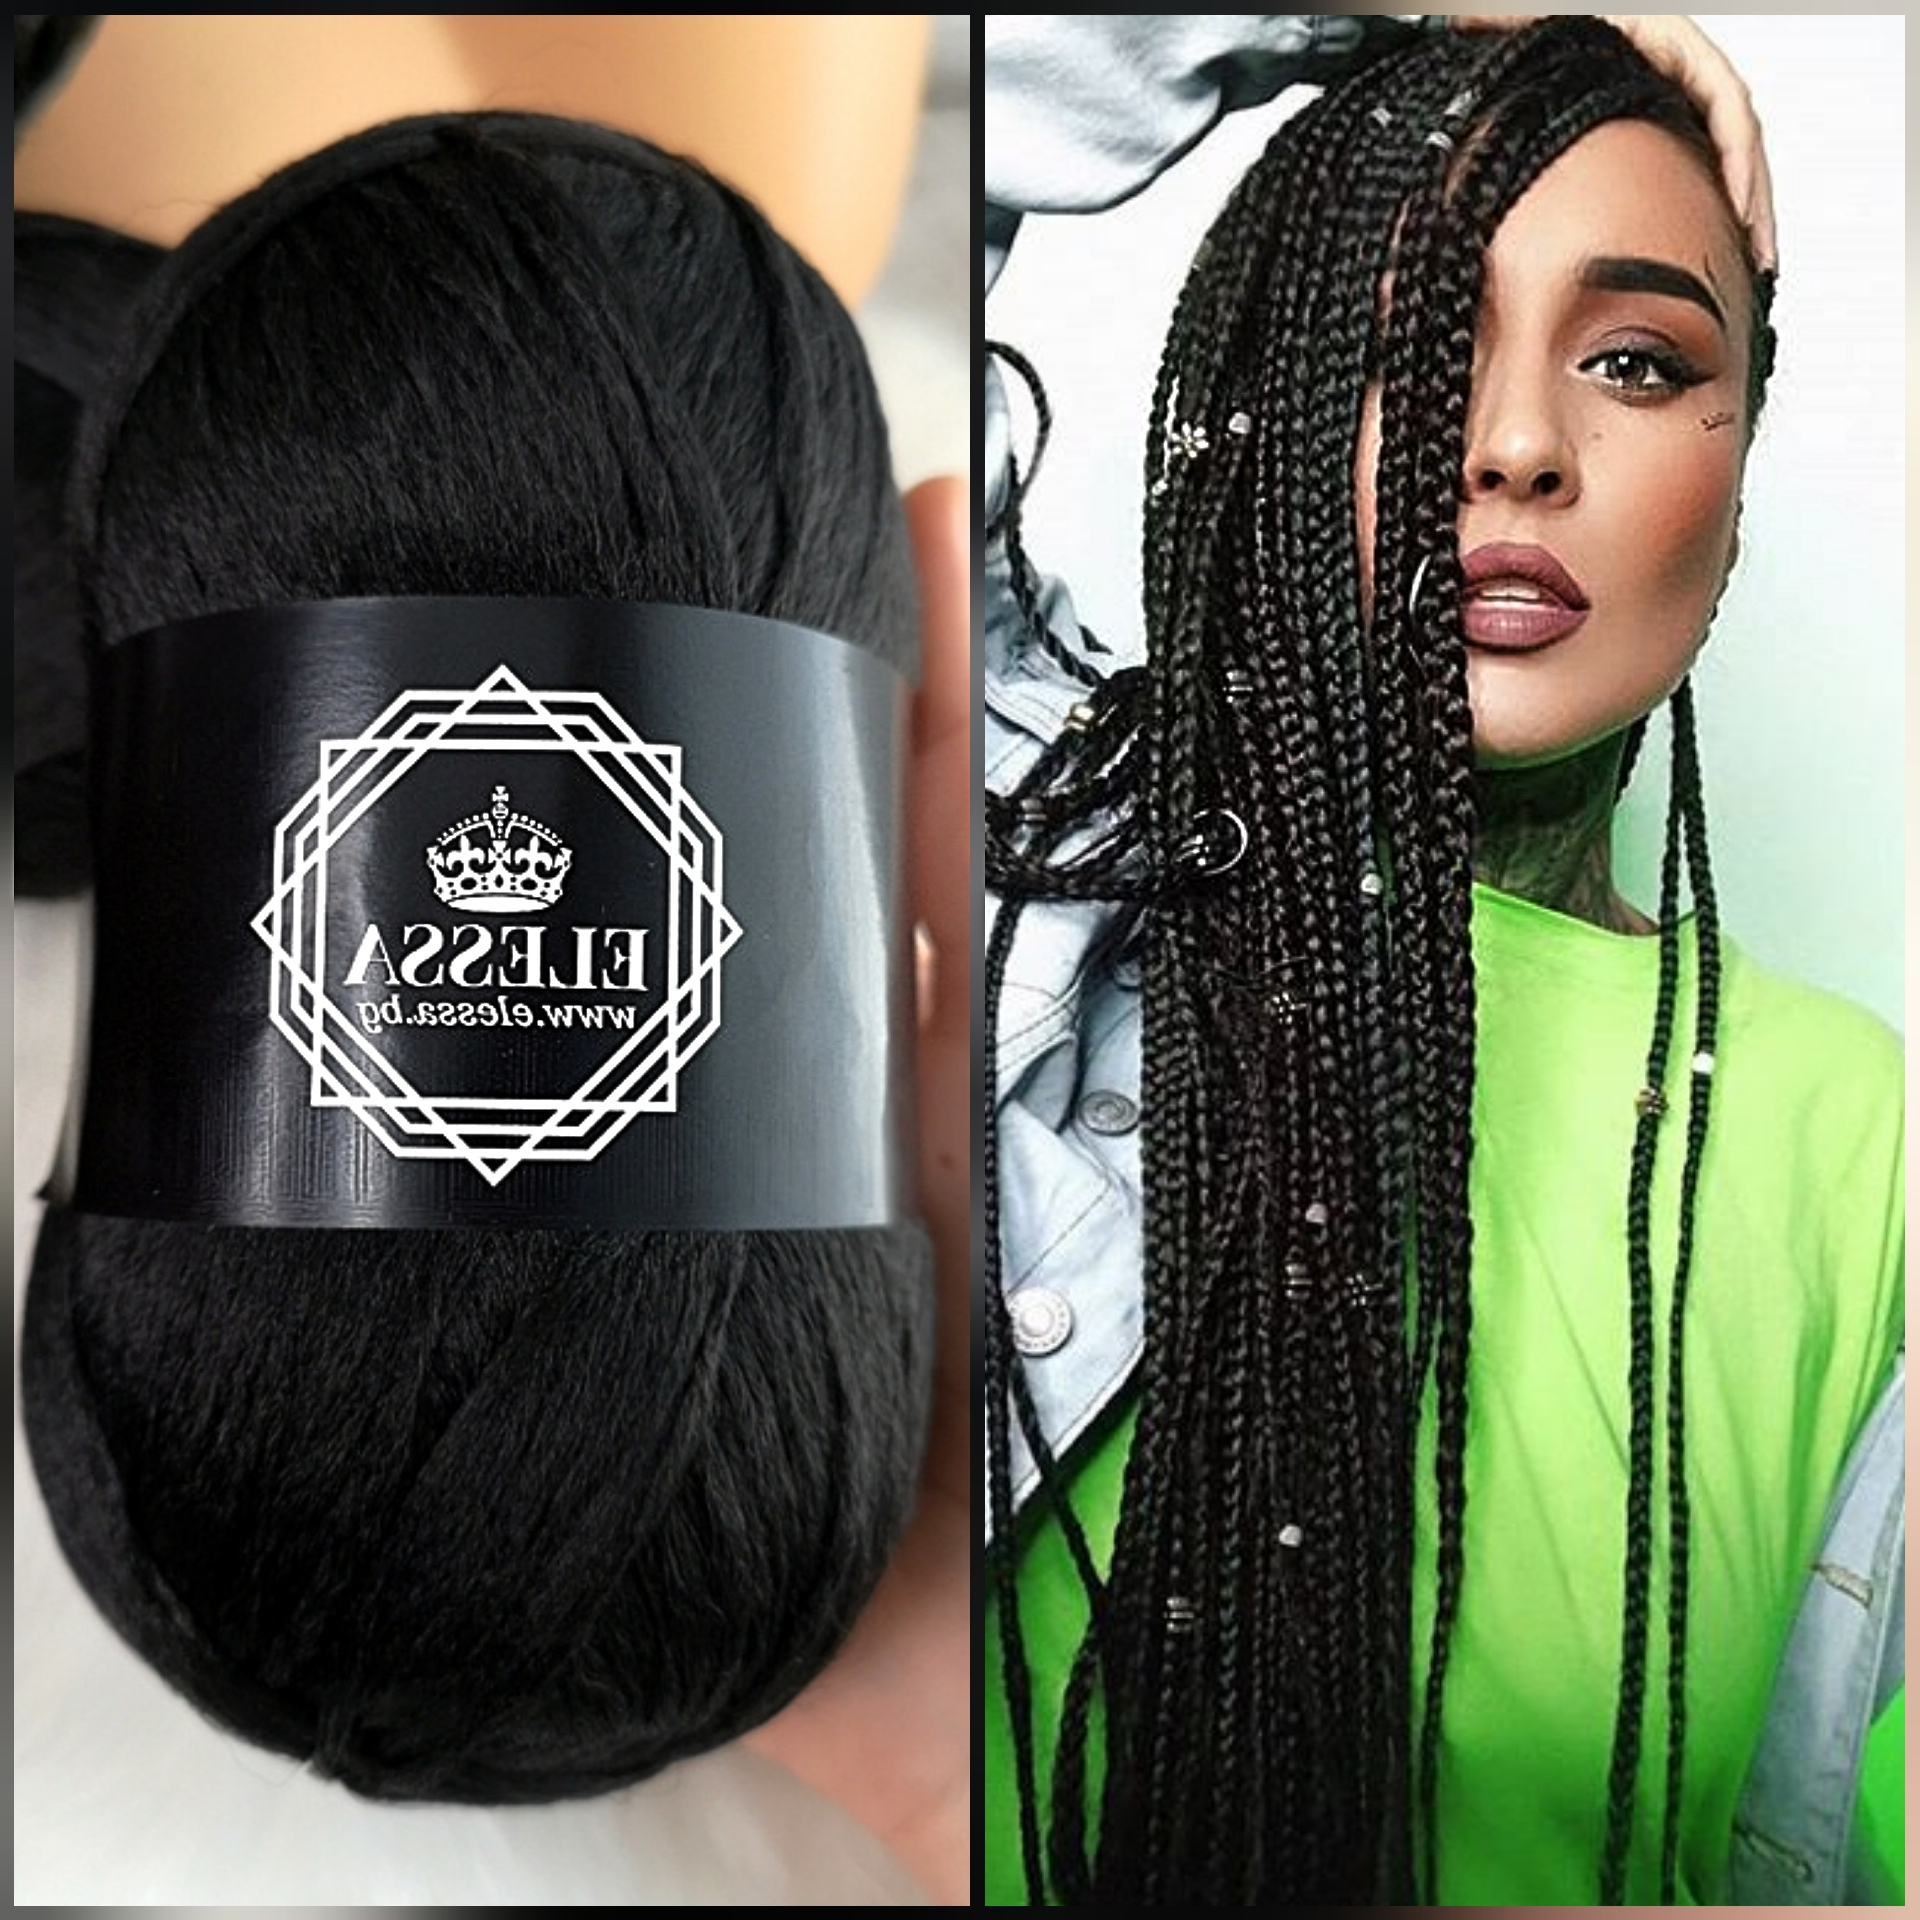 Brazilian Yarn For Braids High Quality Acrylic Wool For Hair Inside Favorite Braided Hairstyles With Beads And Wraps (View 20 of 20)